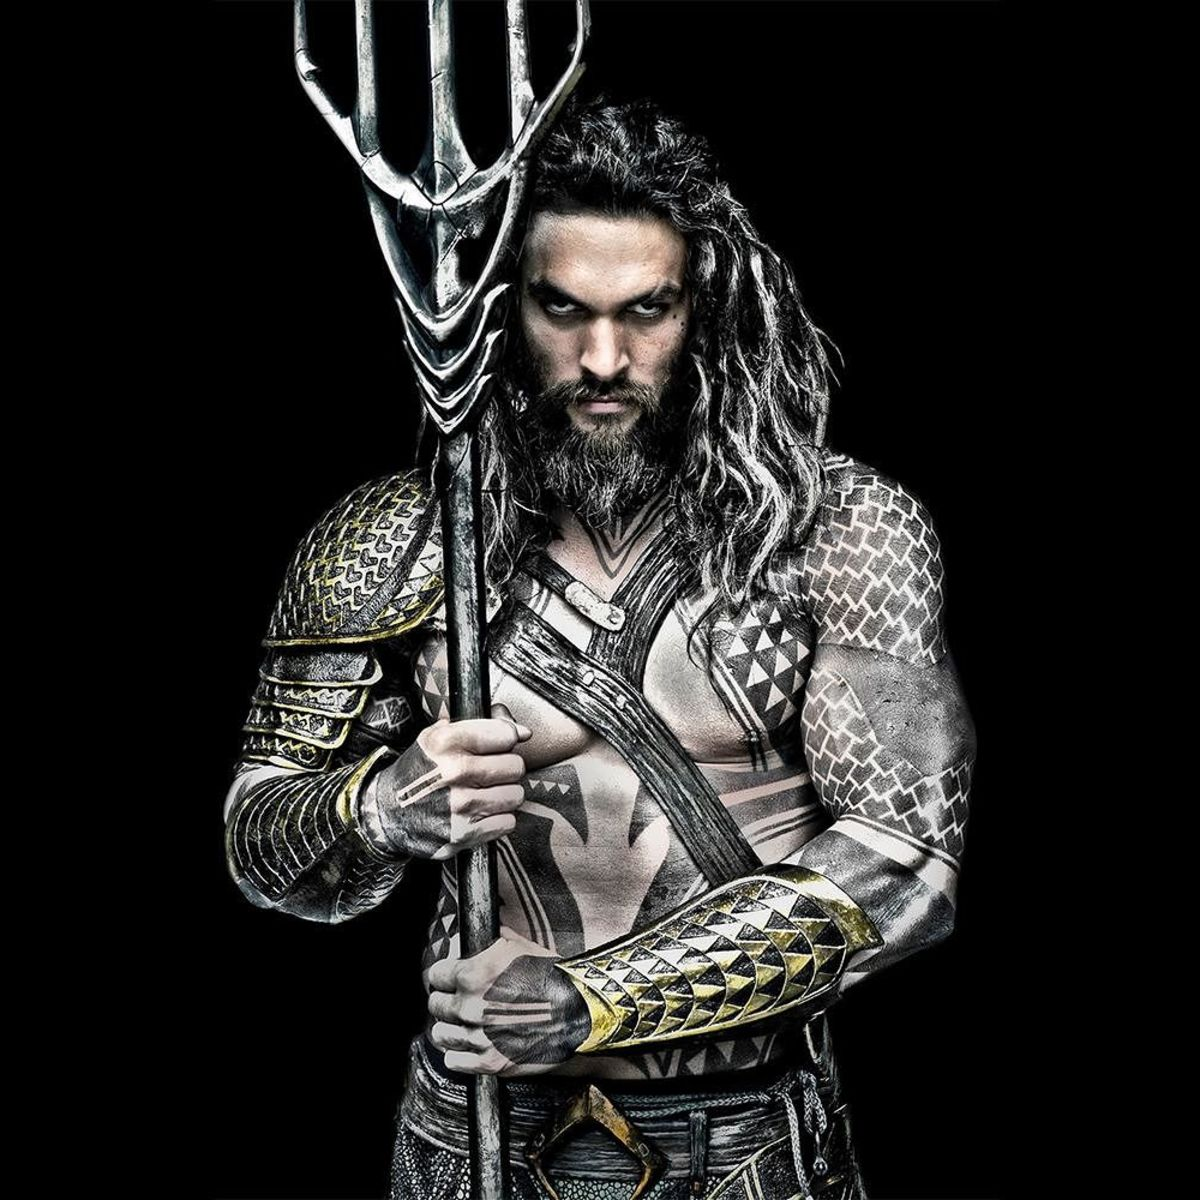 dawn-of-the-justice-league-shows-us-our-first-look-at-jason-momoa-as-aquaman-jason-momoa-800037.jpg